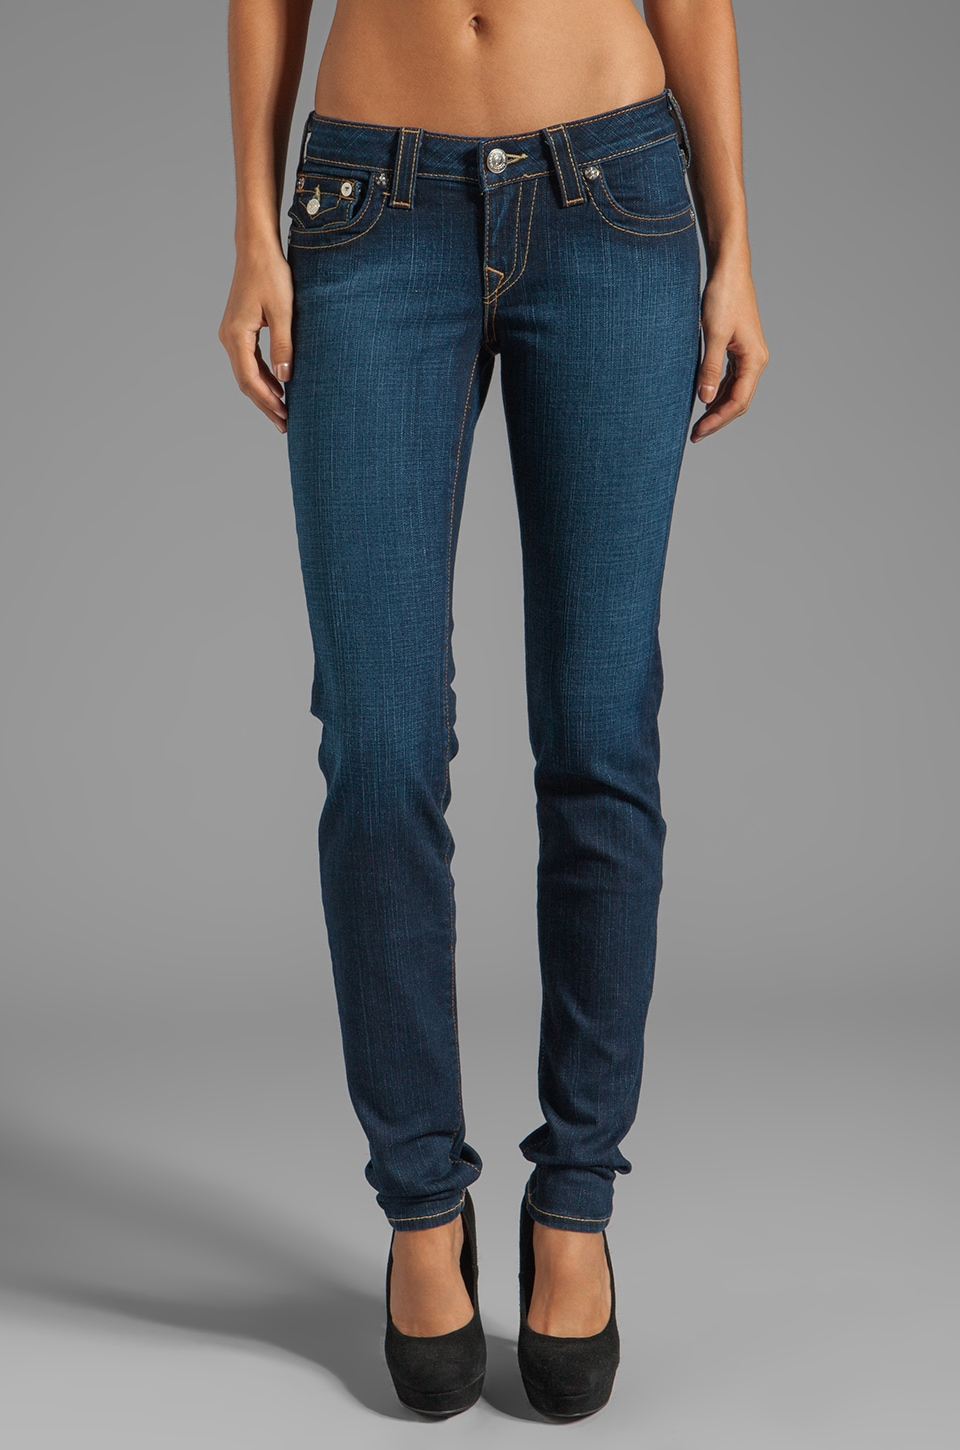 True Religion Julie Skinny in Lonestar